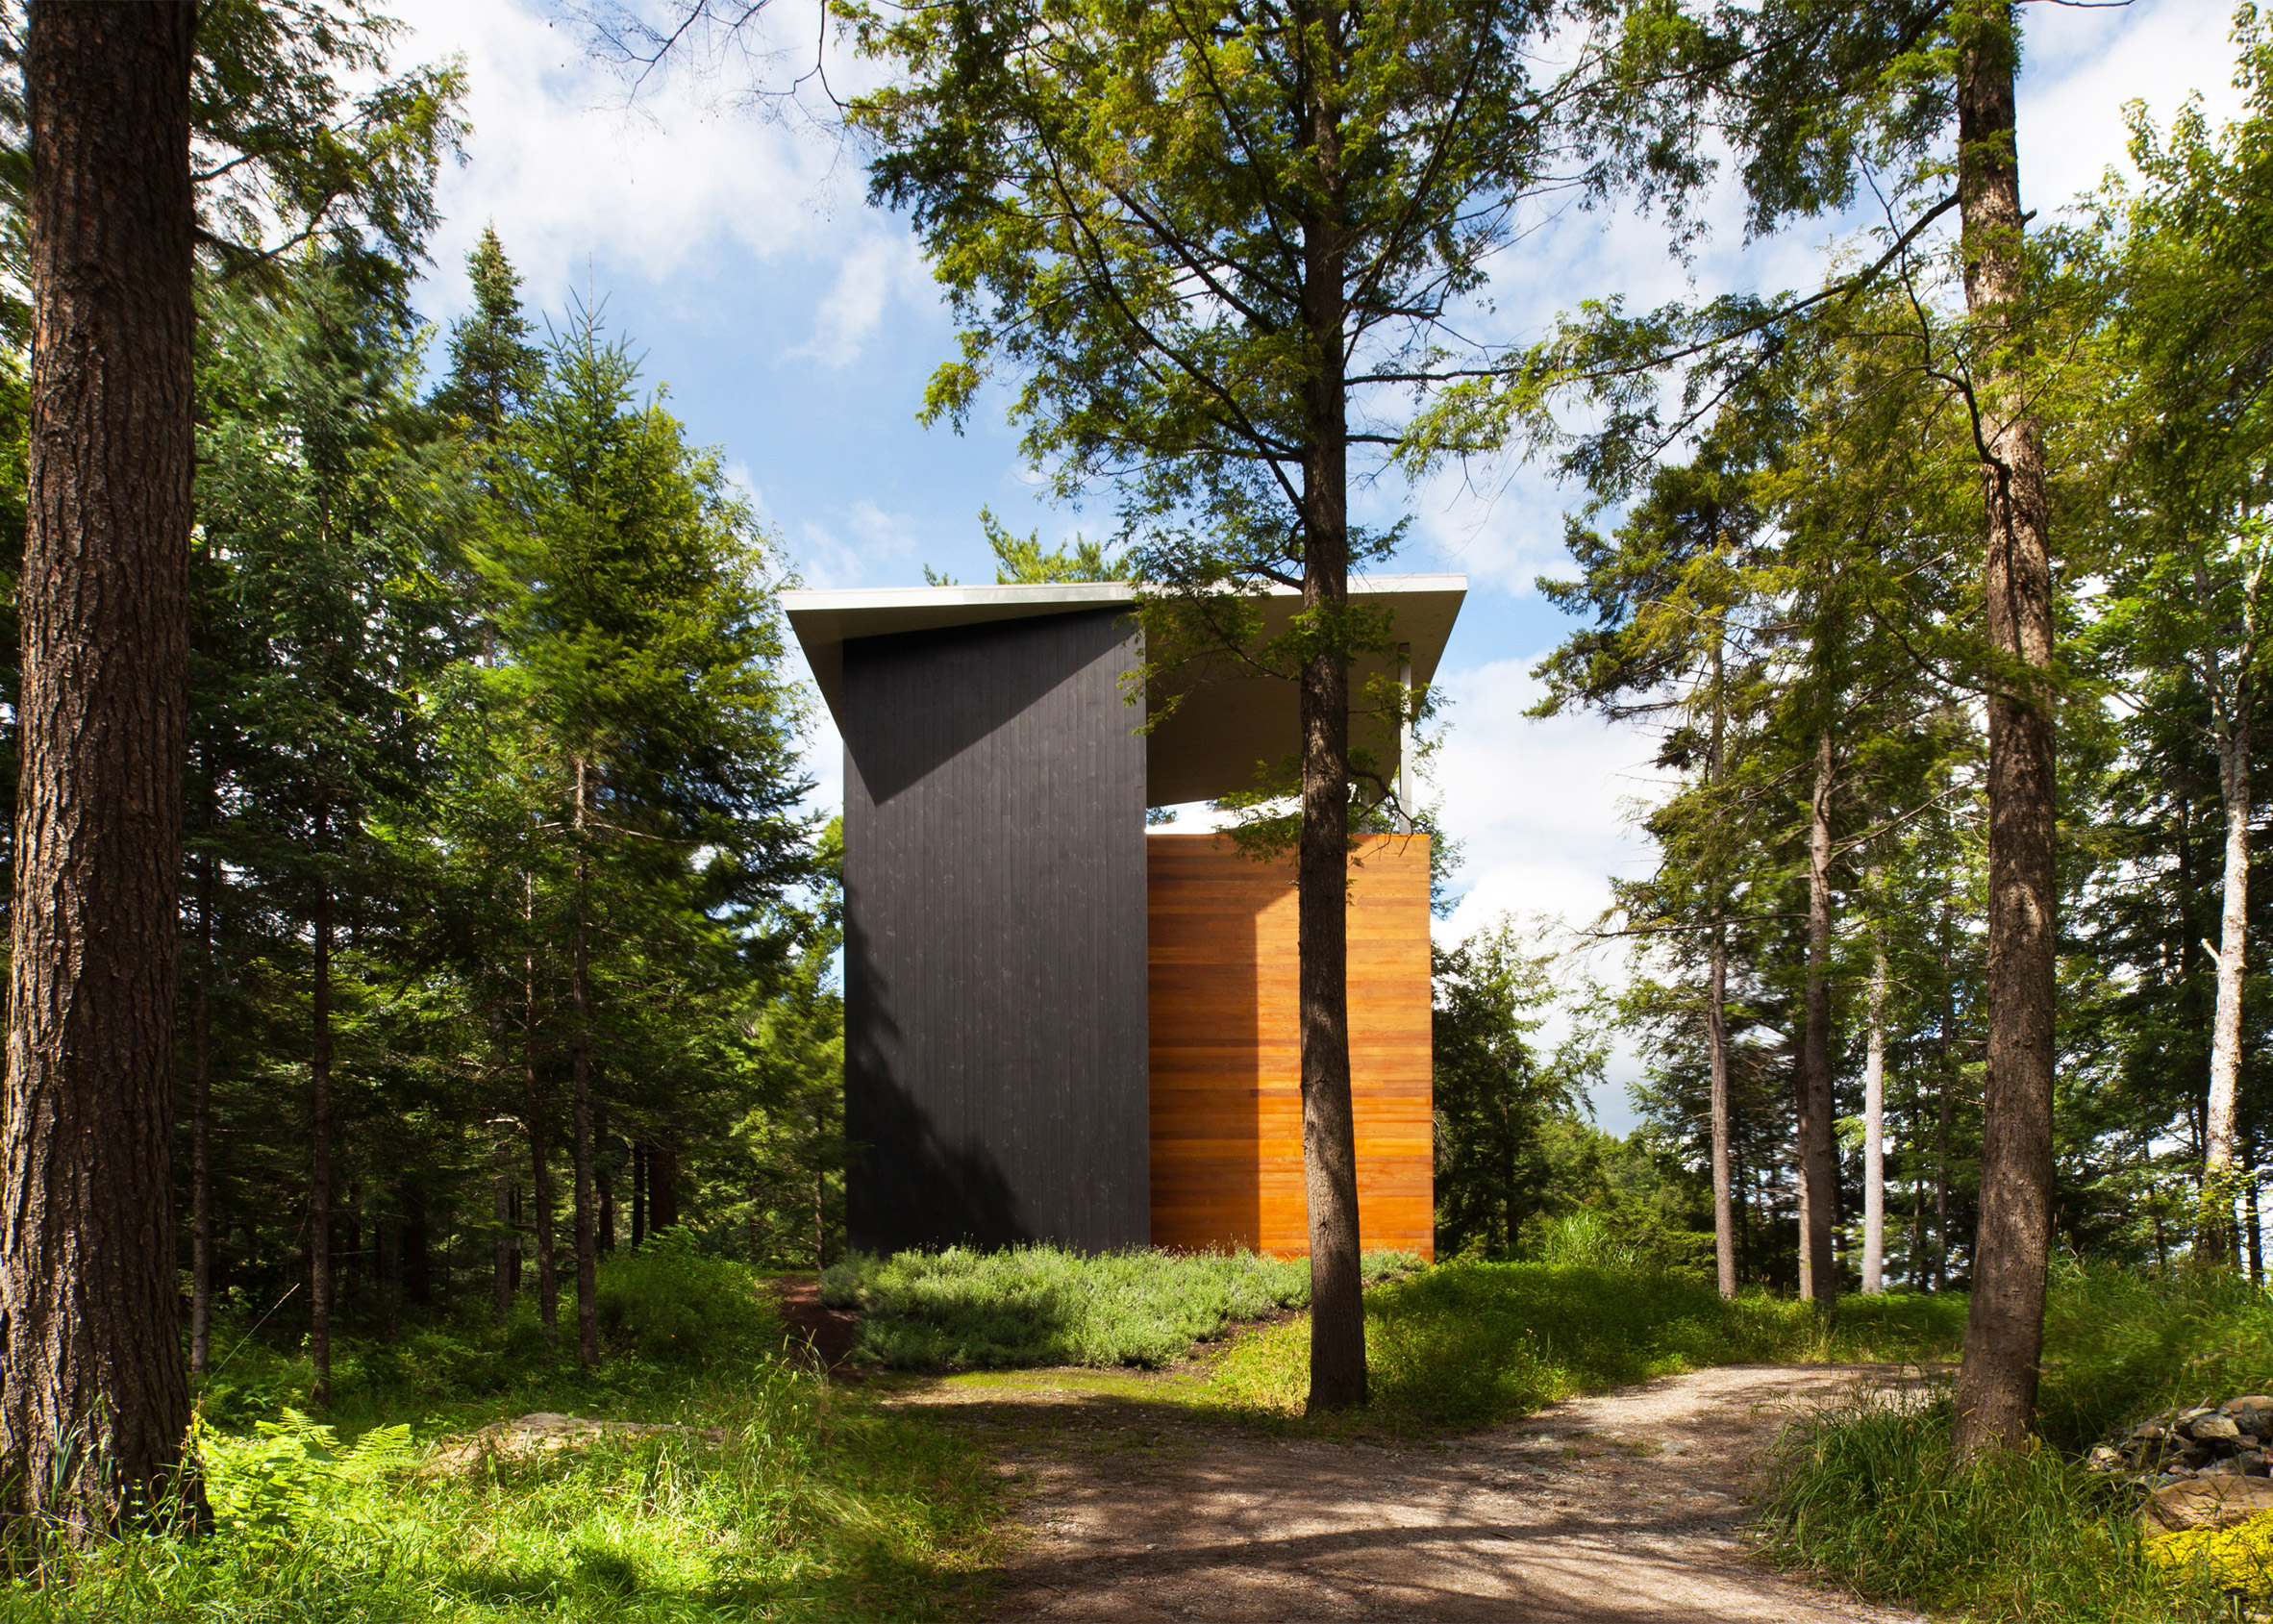 YH2 clads a Quebec holiday home for a sculptor in red cedar and blackened pine